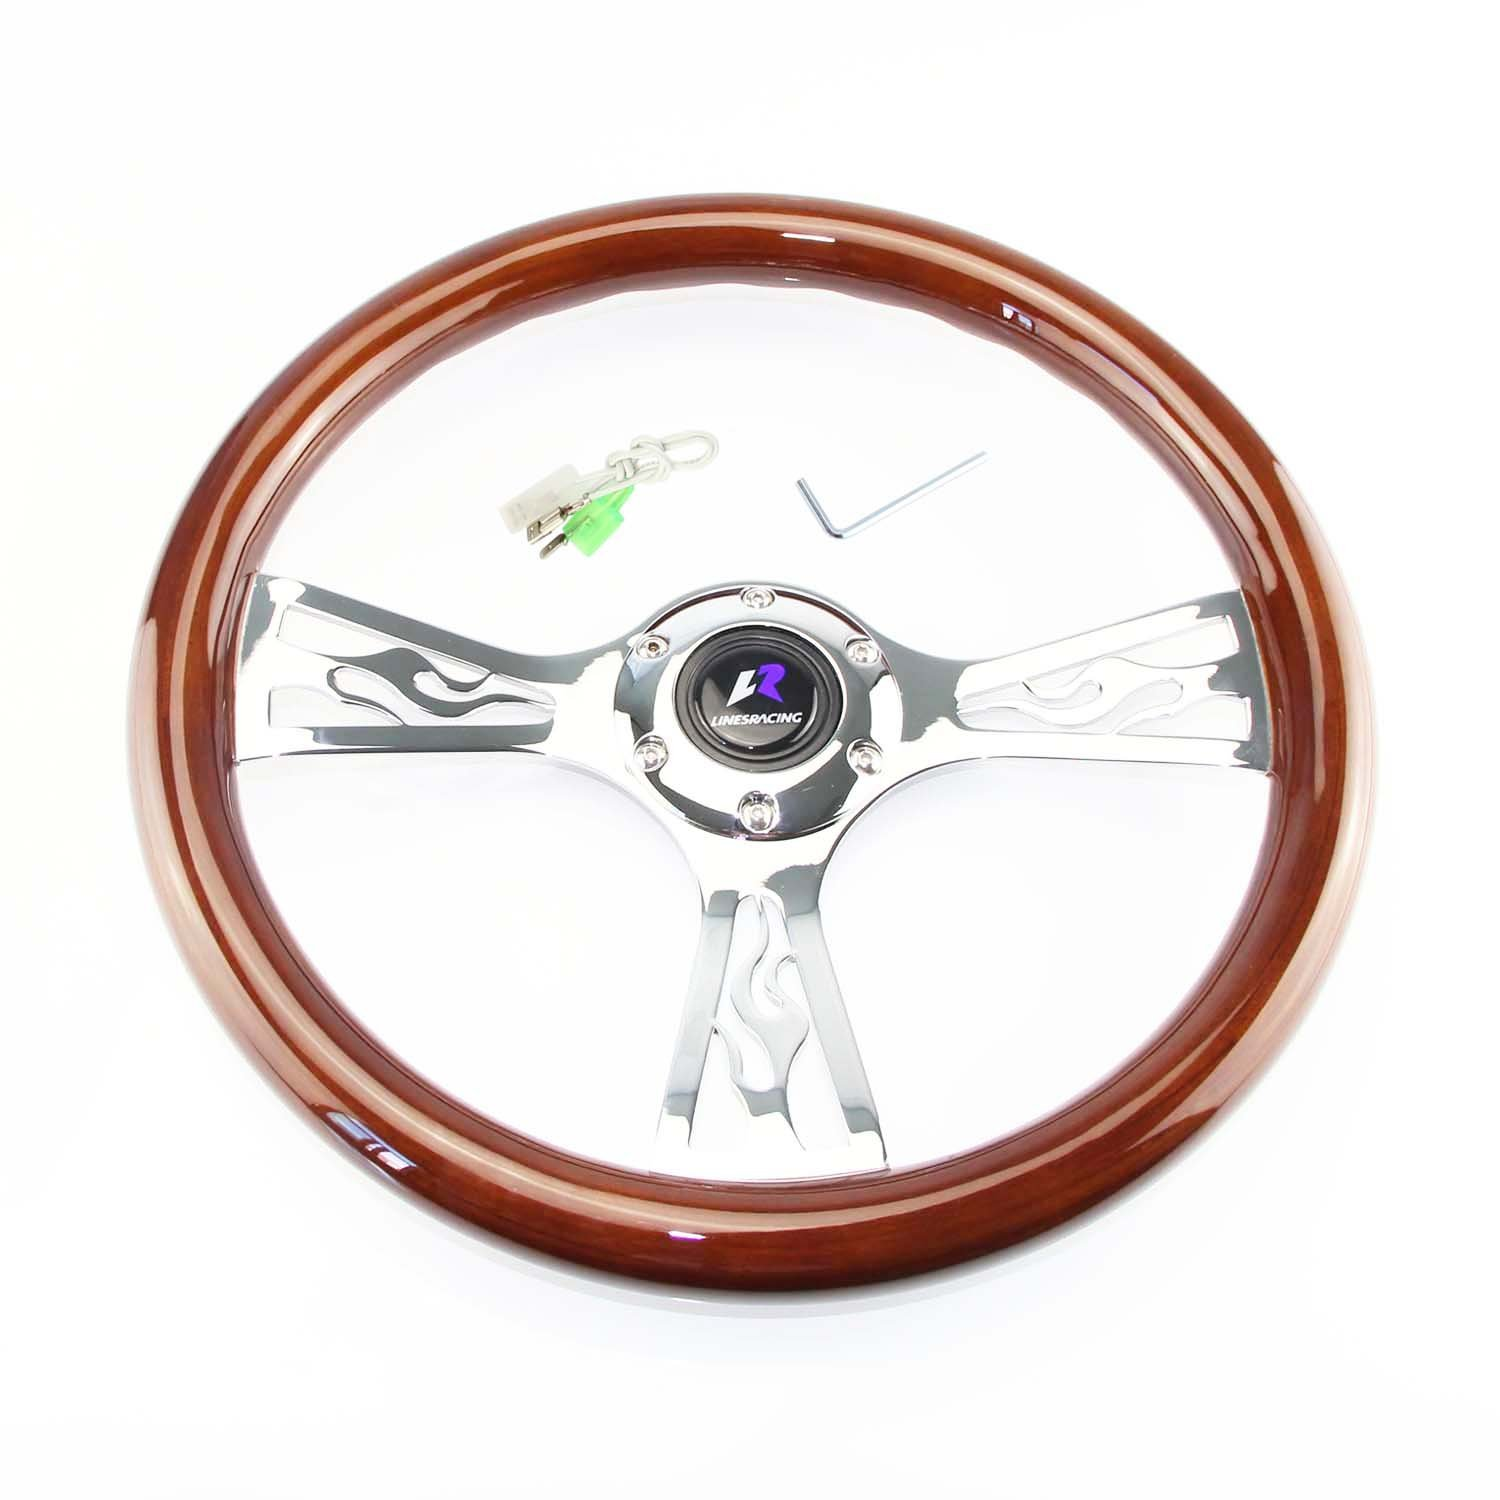 LR Universal 14'' steering wheel with horn, 6 bolts 1.75'' Dish, Mirrored Chrome Spoke (Wood / Classic T spoke)